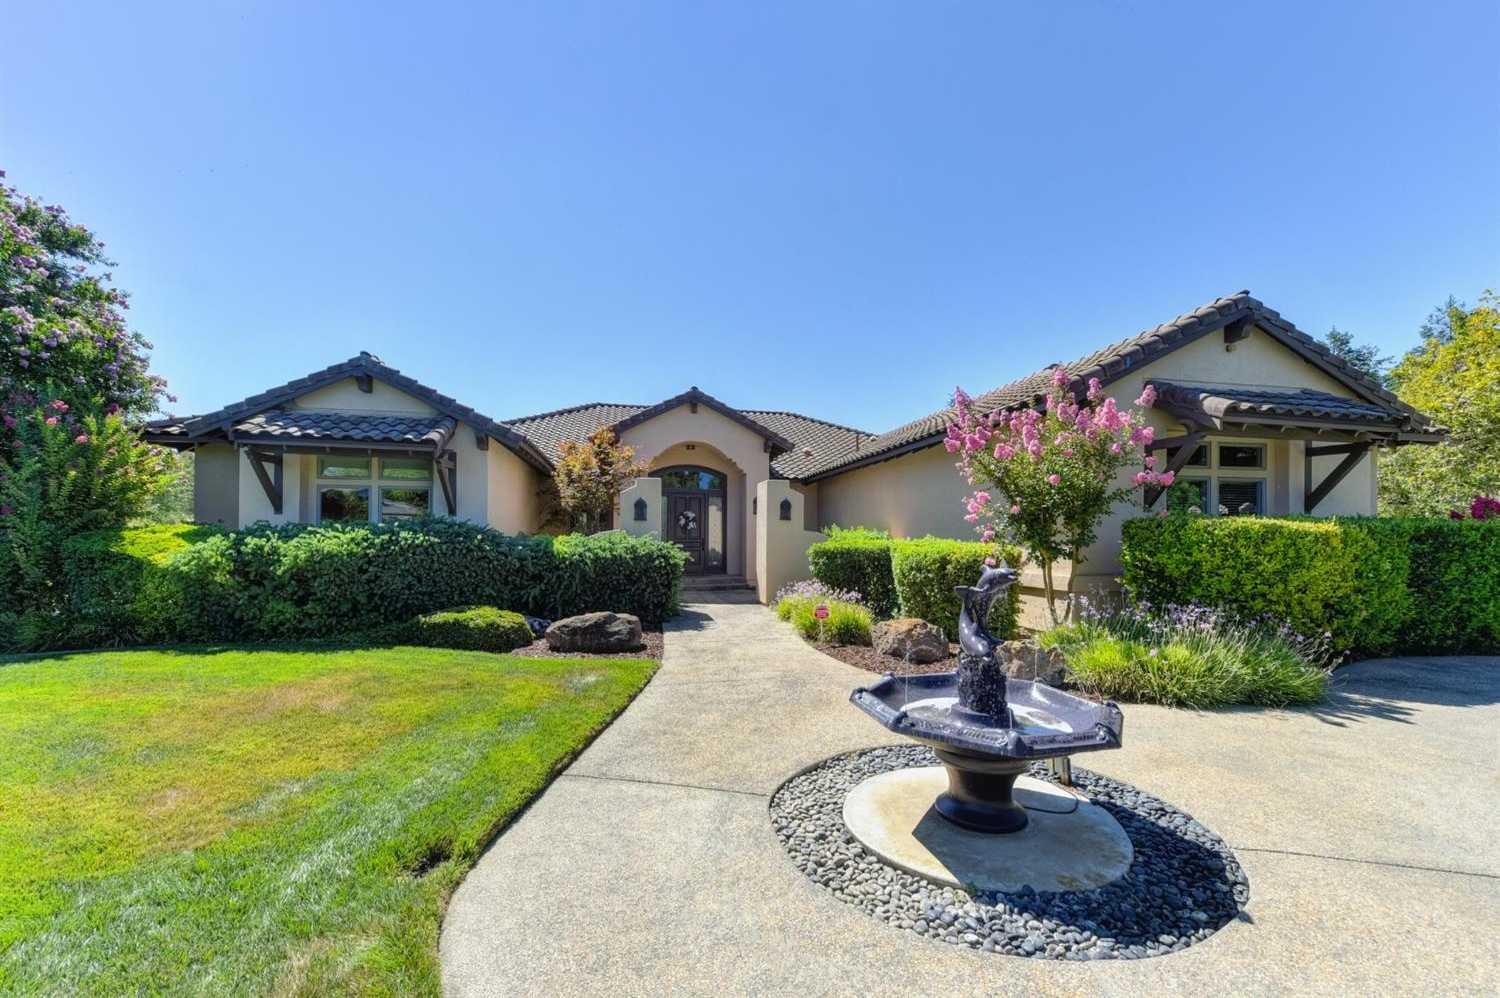 $1,425,000 - 3Br/4Ba -  for Sale in The Estates At North Davis Meadows, Davis